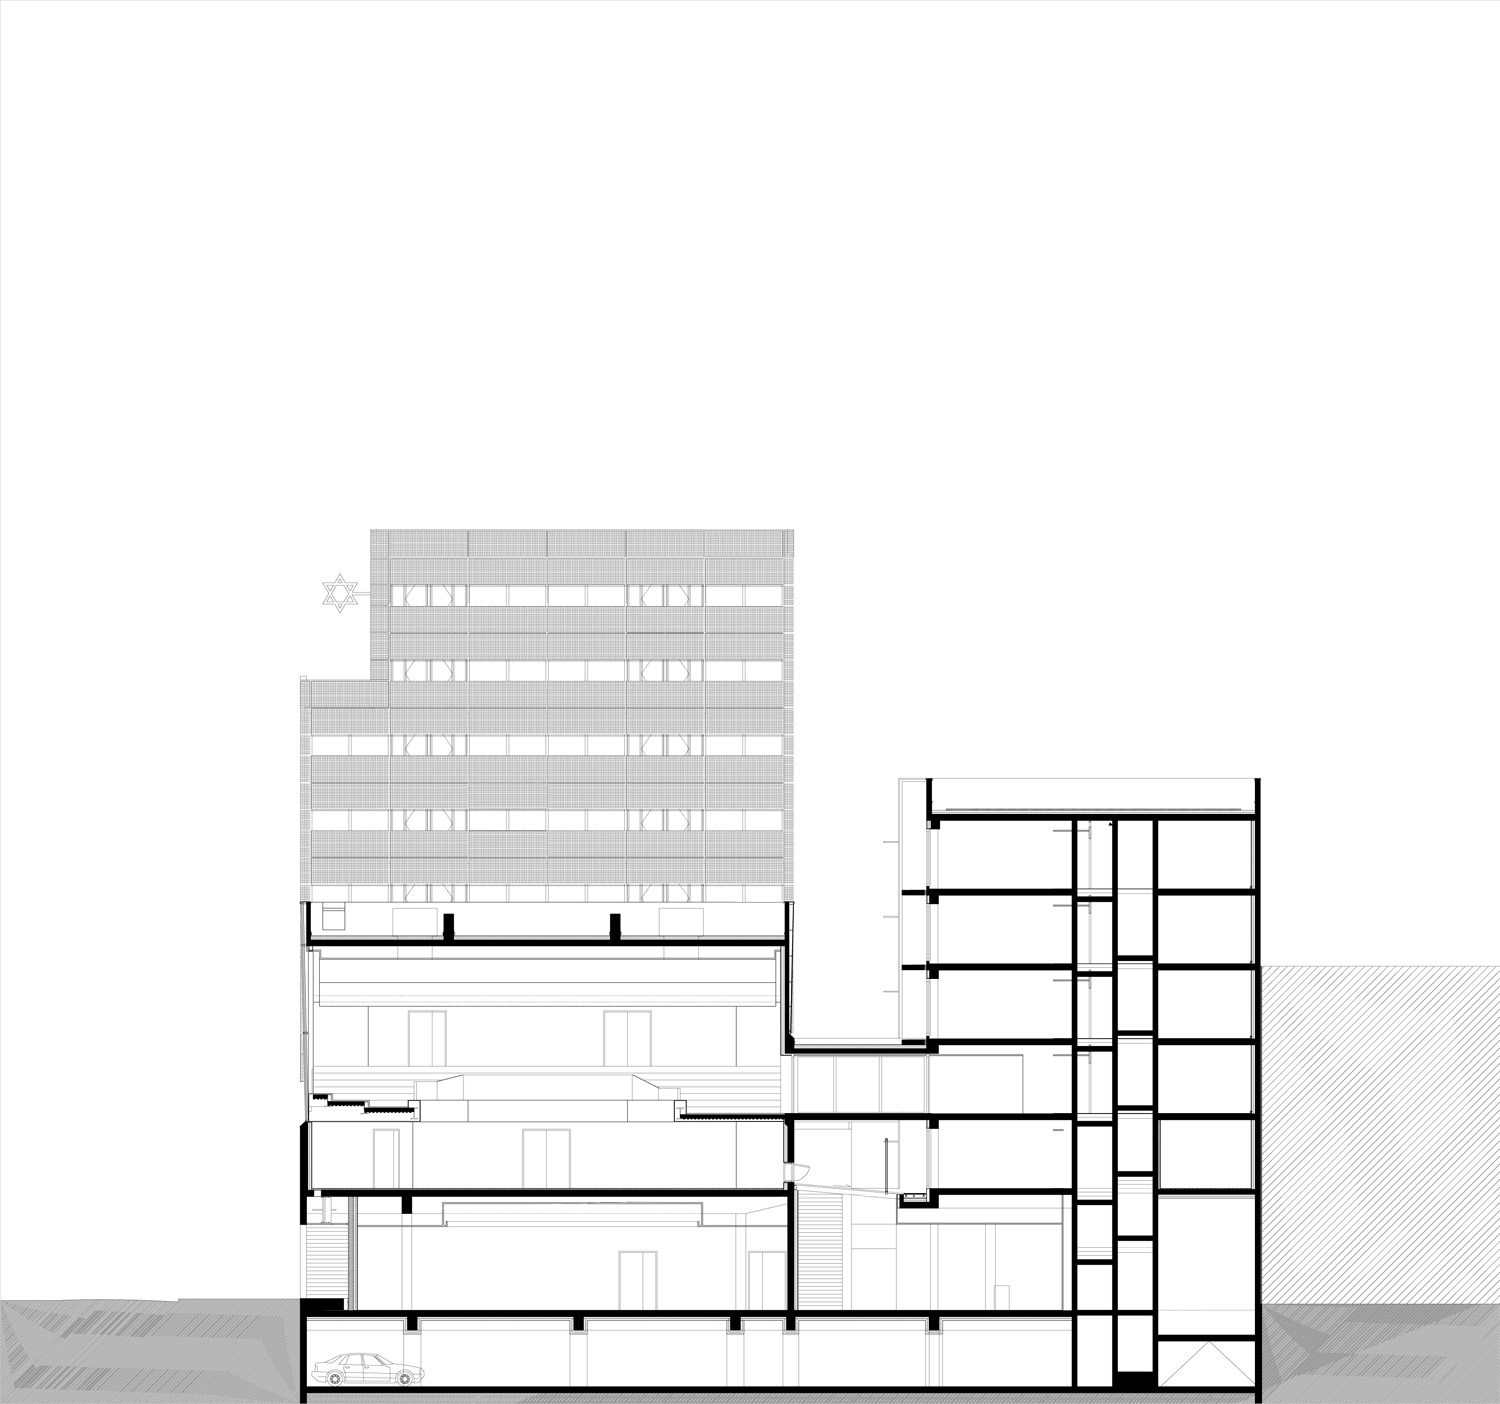 transversal section 1 ©StéphaneMaupinArchitecture}